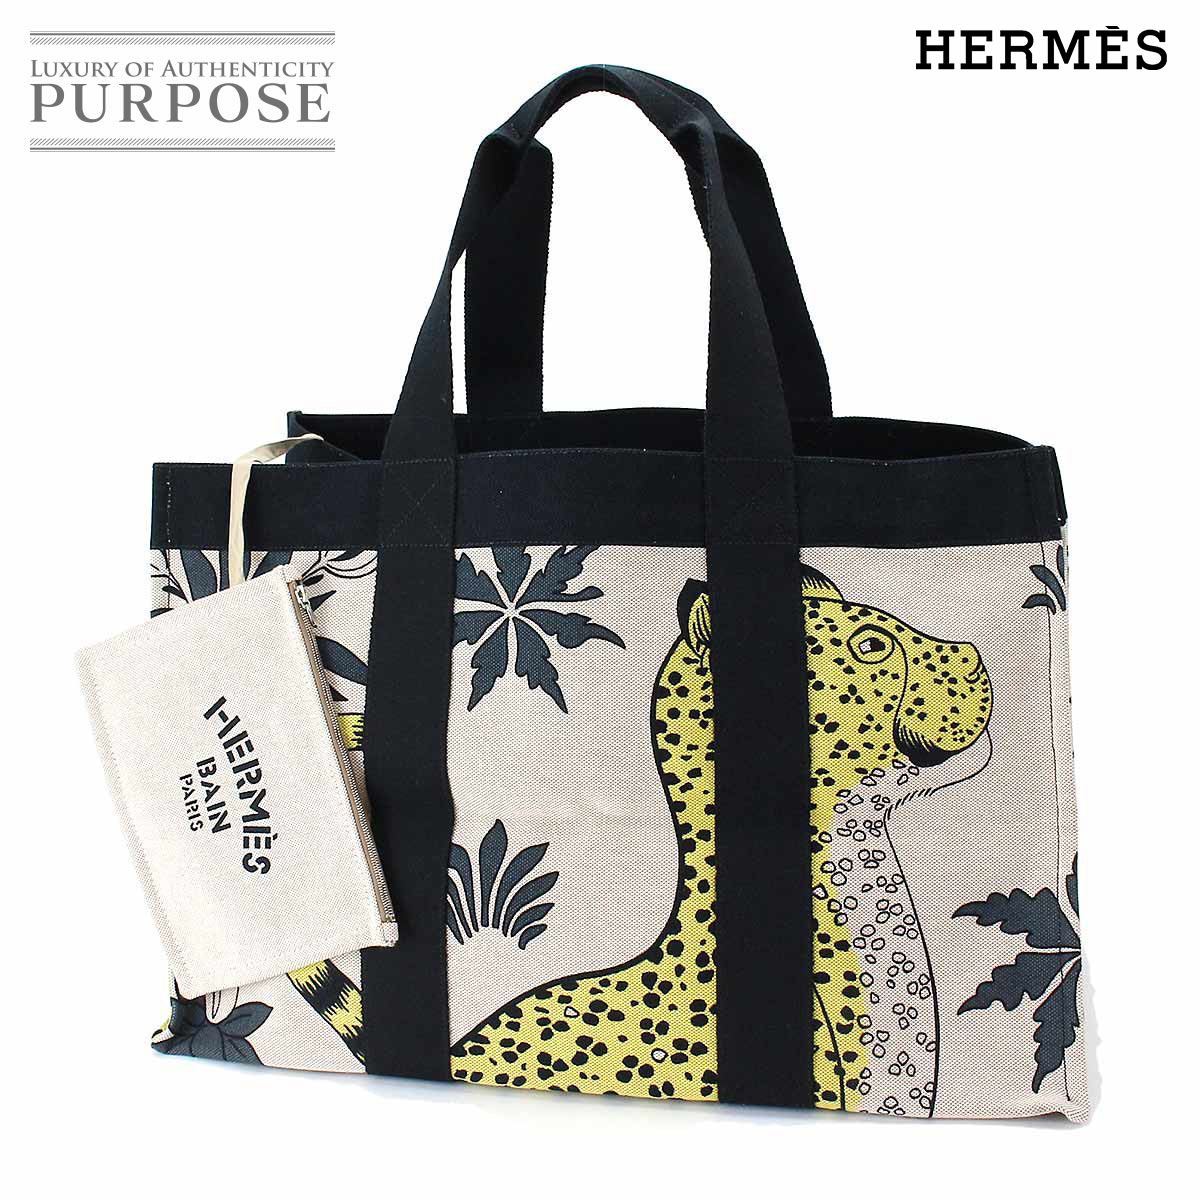 Hermes HERMES beach bag tote bag cotton canvas natural beige multicolored  leopard leopard